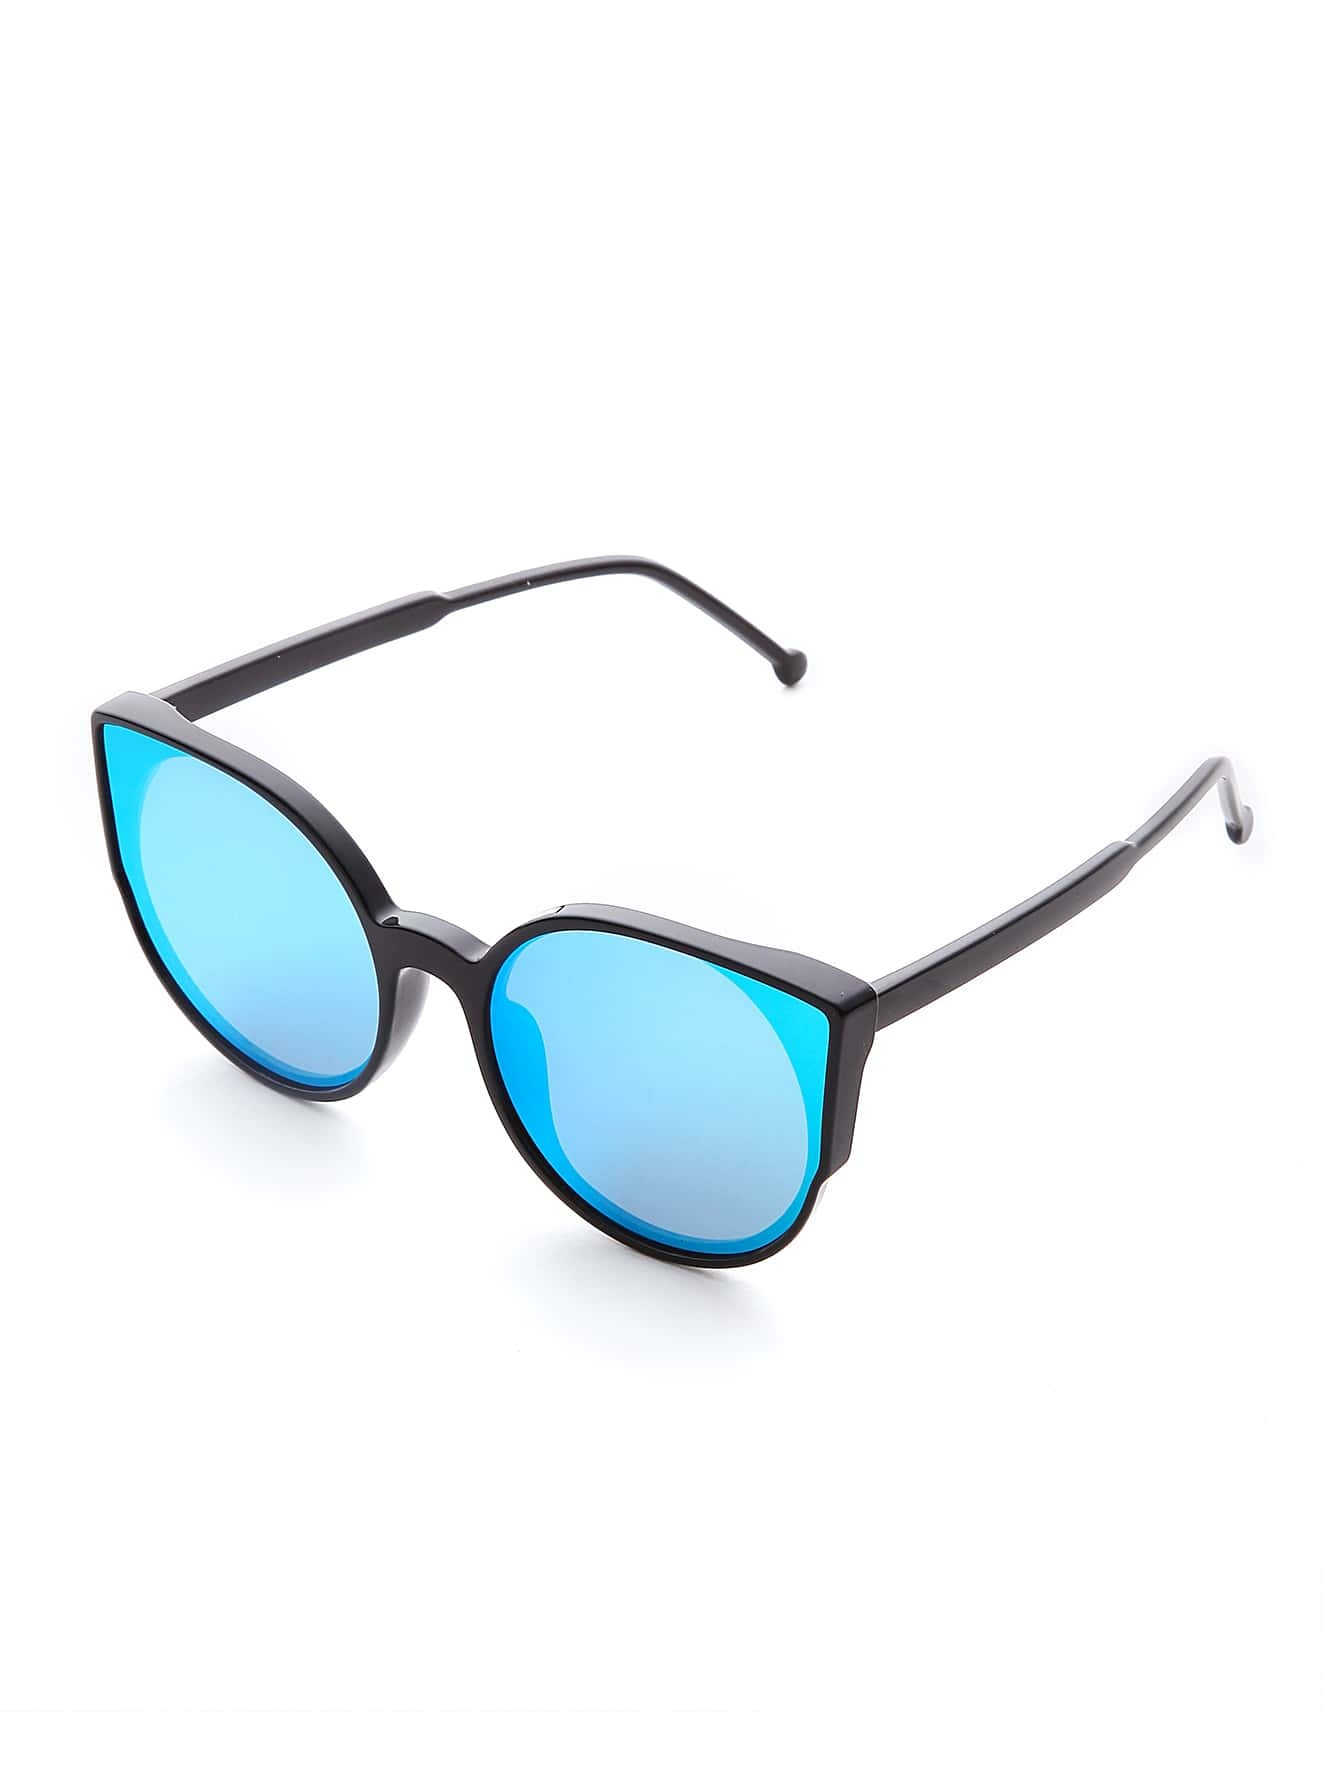 Black Frame Blue Lens Cat Eye Sunglasses